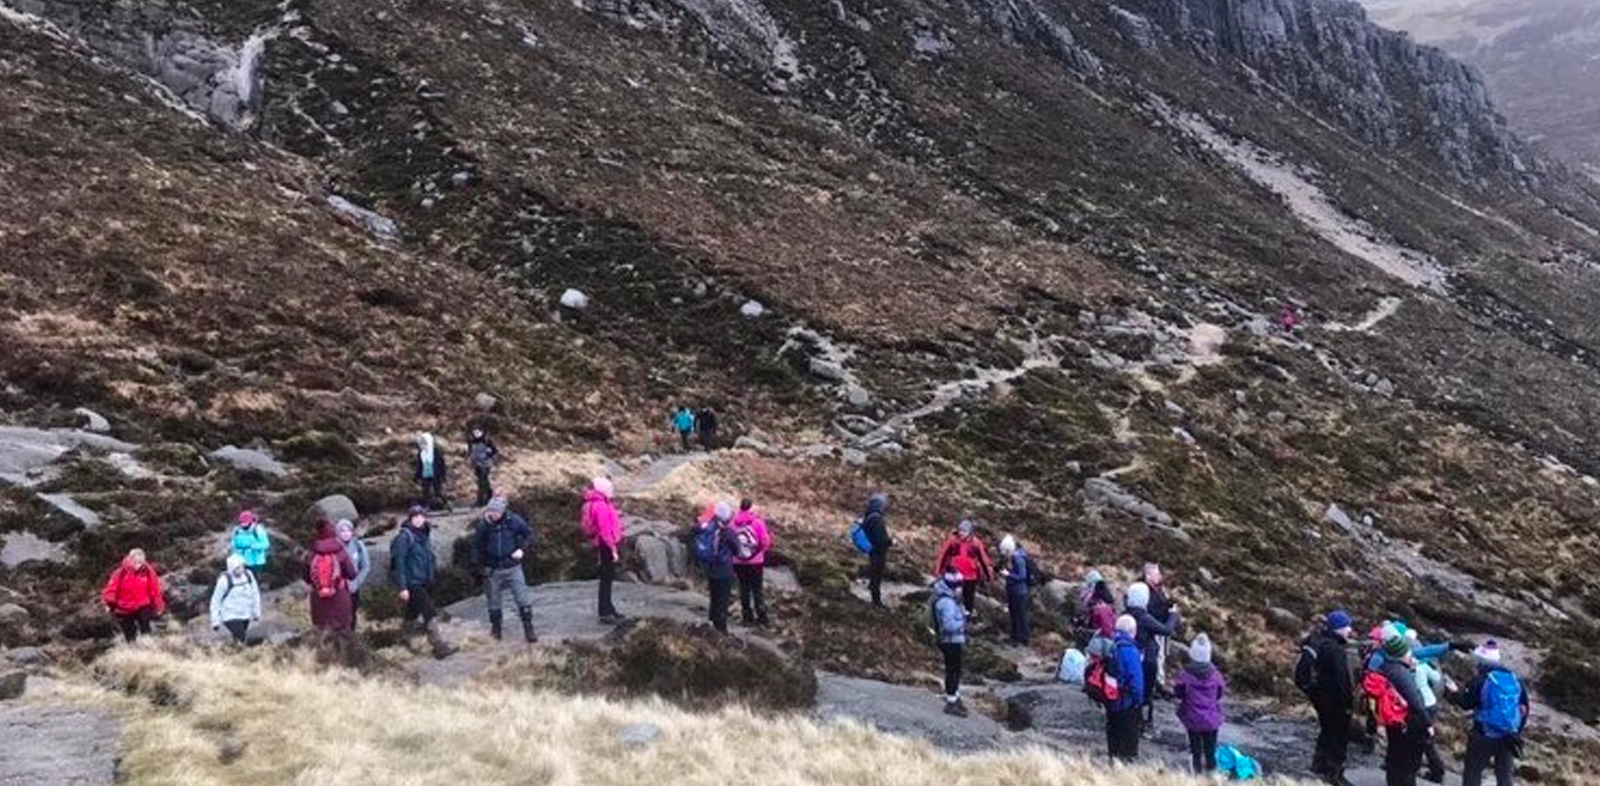 The power of social media and hiking: an invitation hike that spiralled